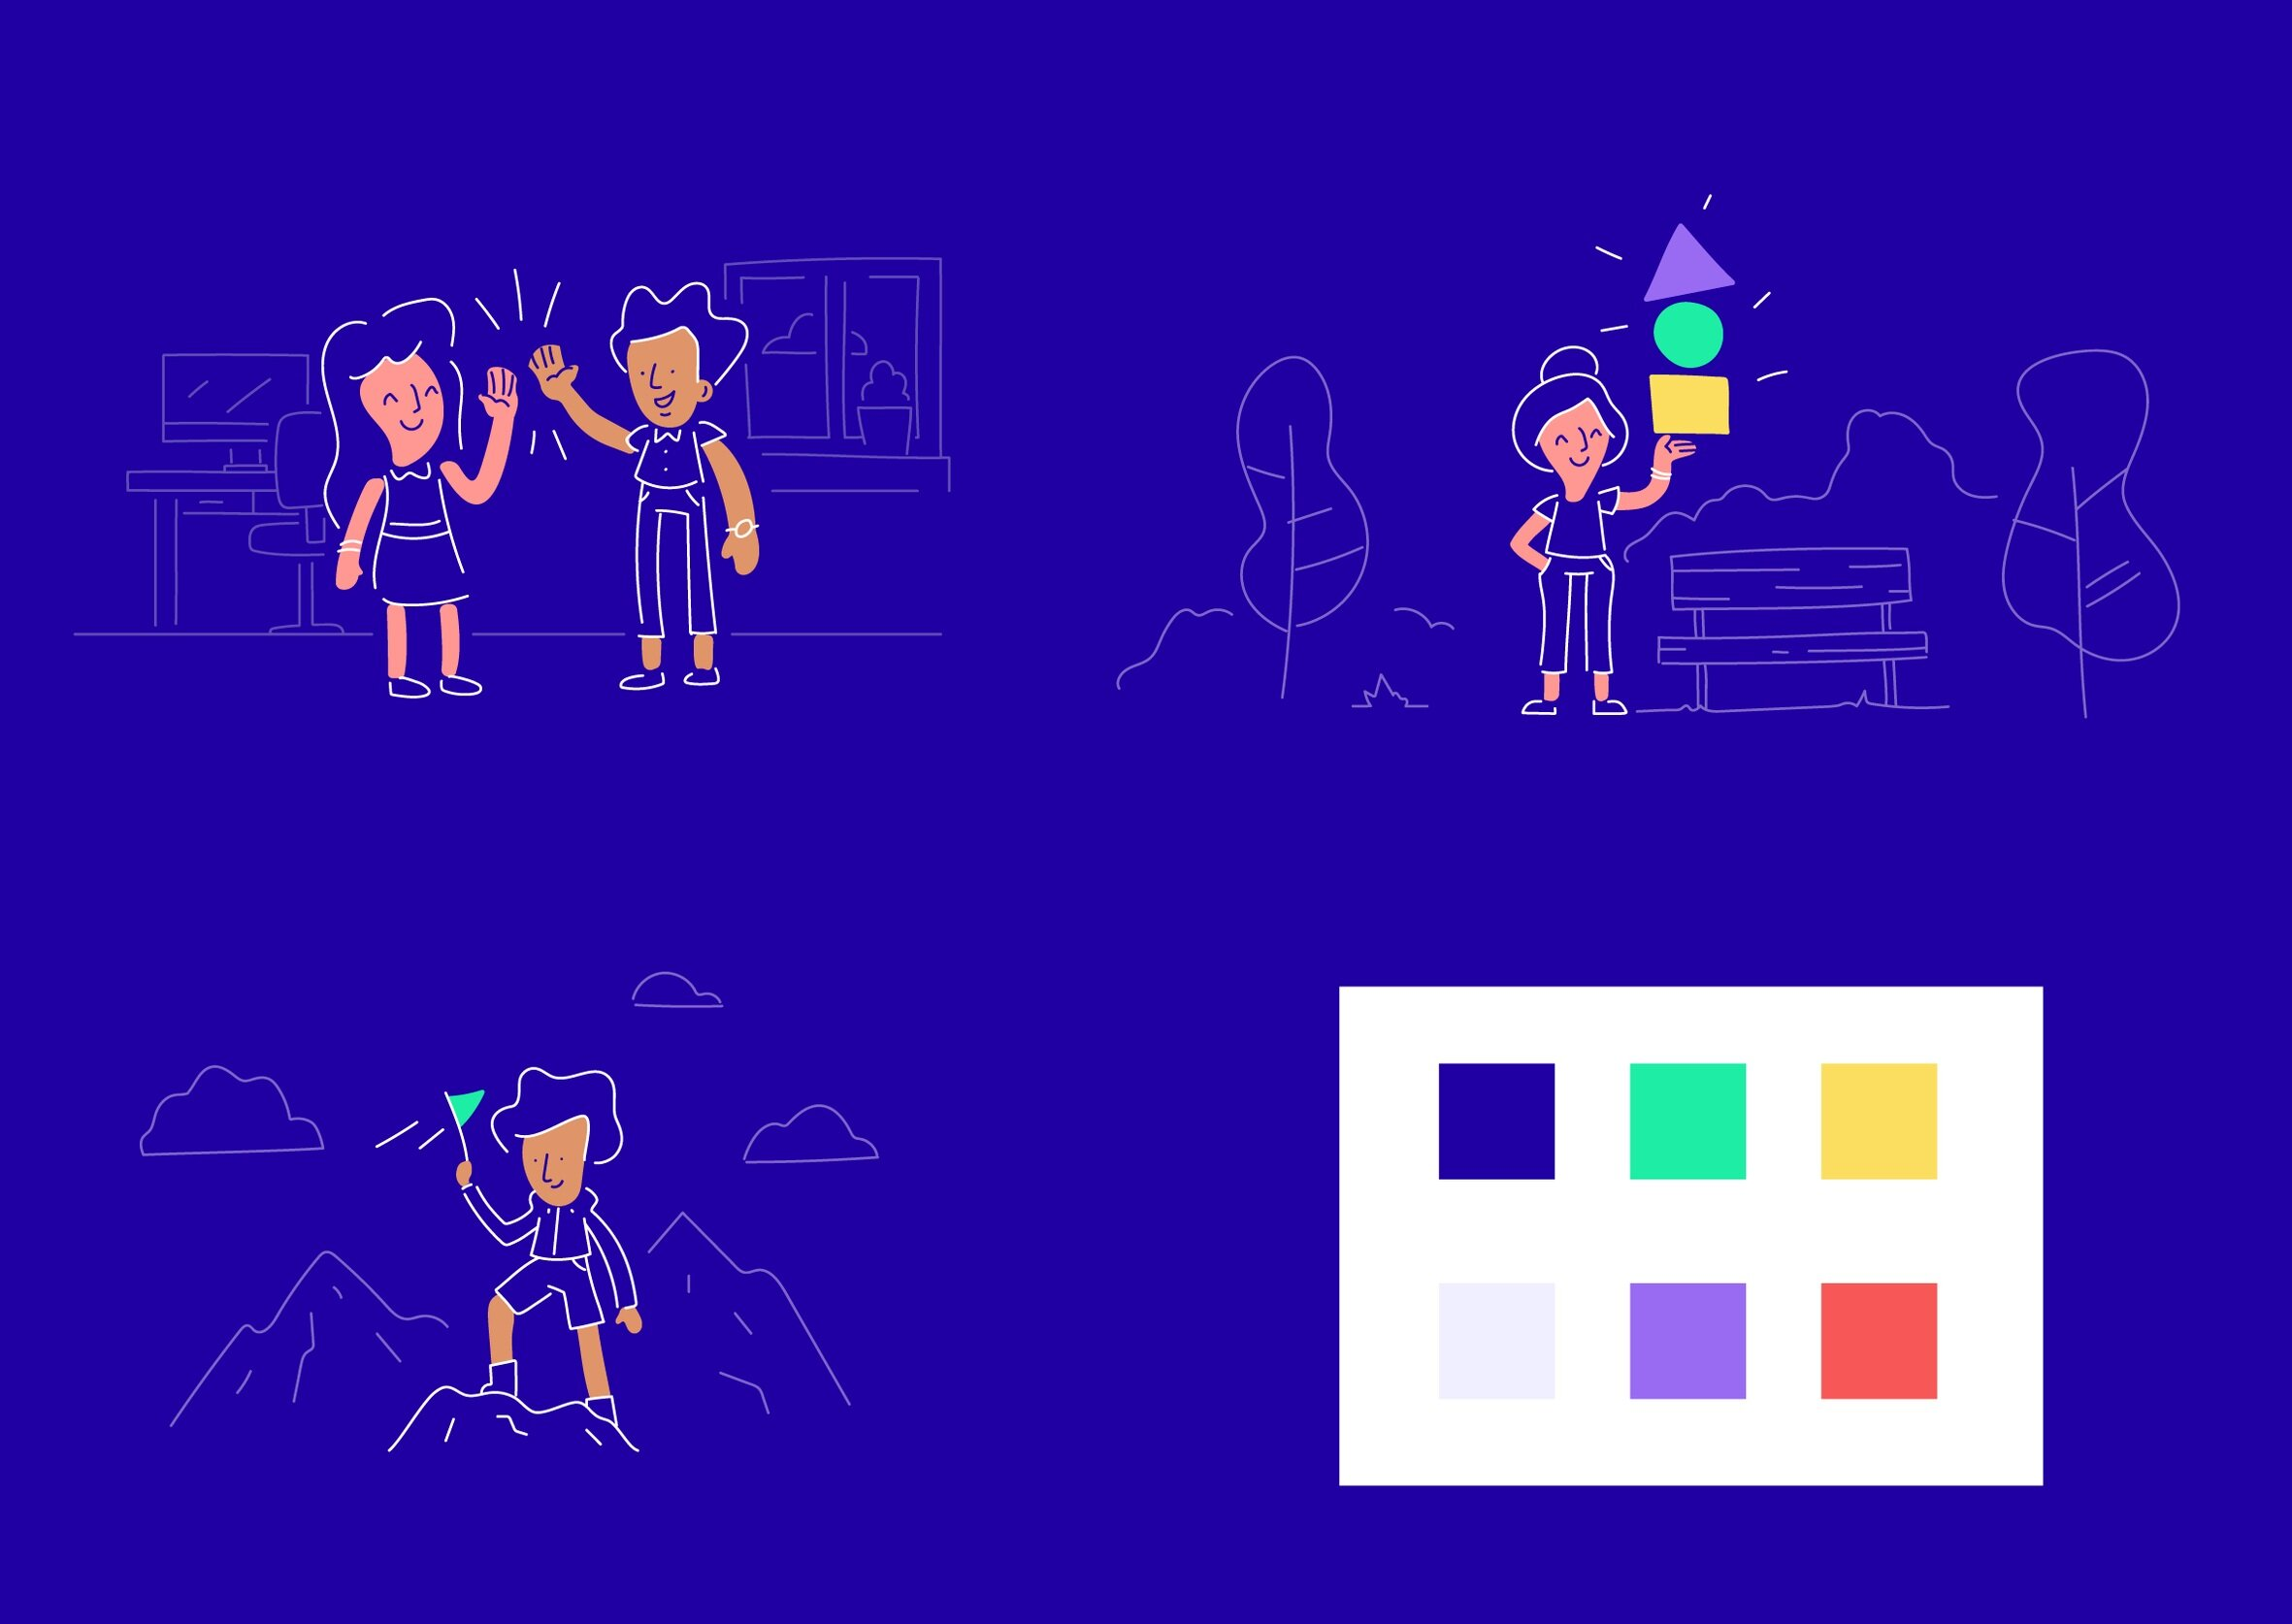 Scratch's official illustration style and colour palette